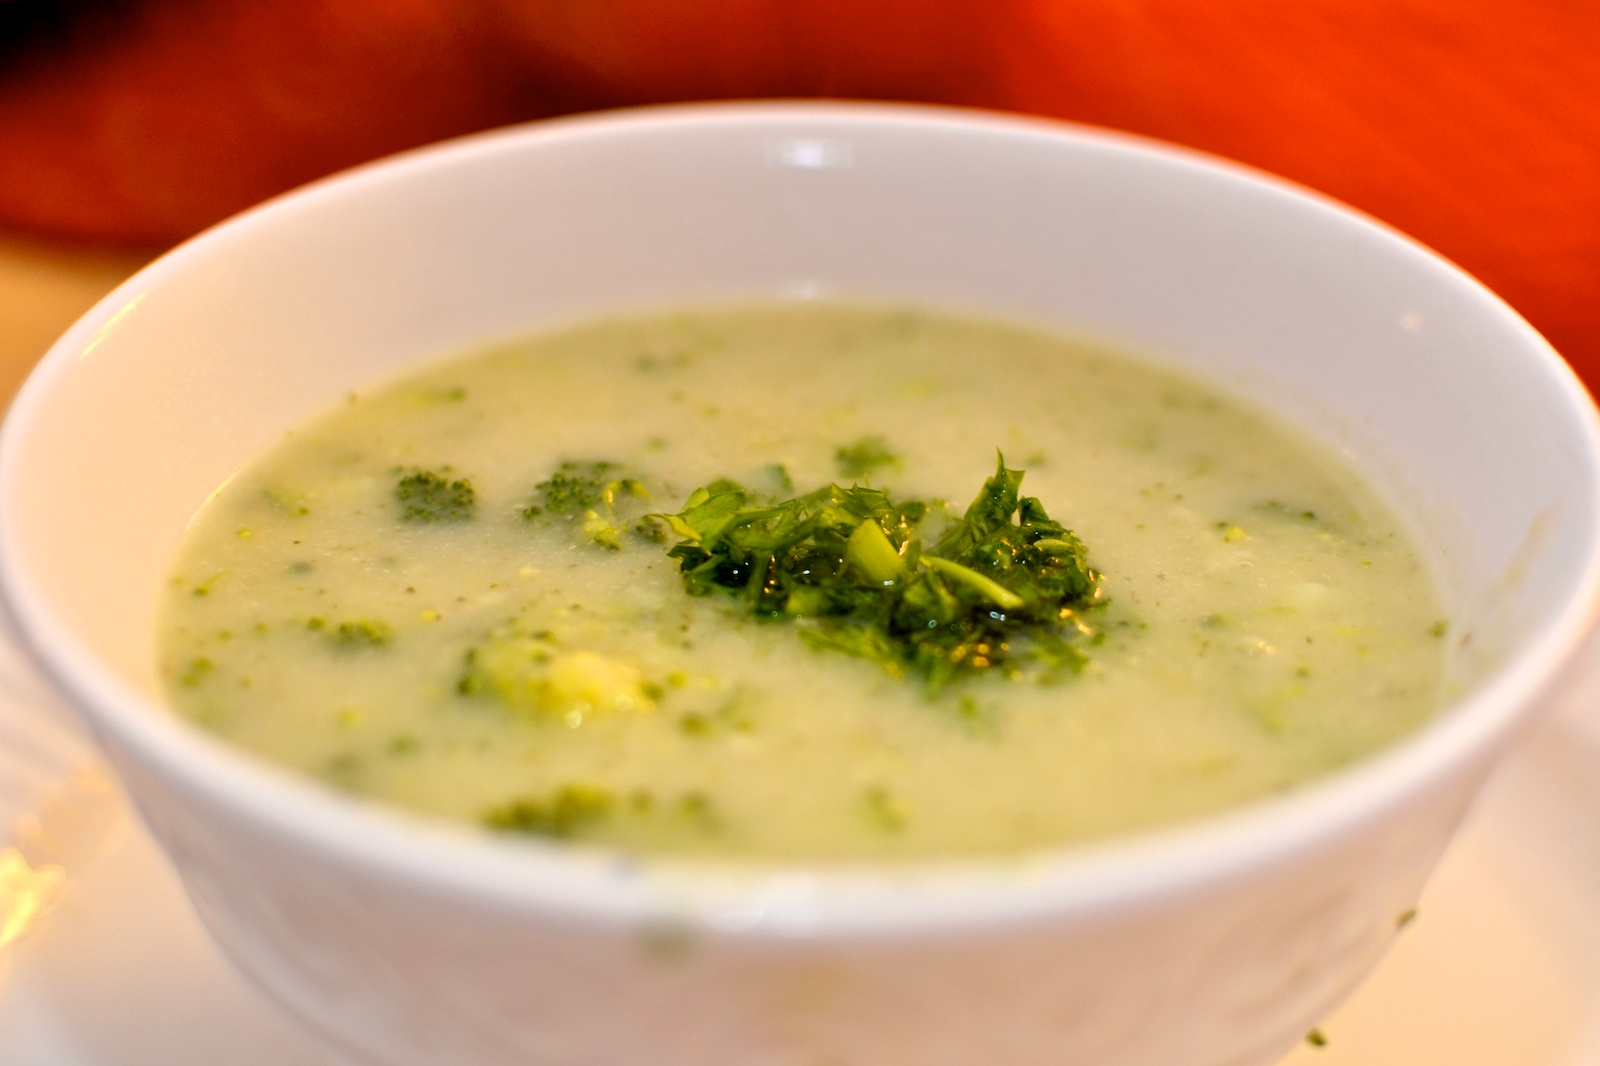 Vegan Cream of Broccoli Soup – Breast Cancer Authority